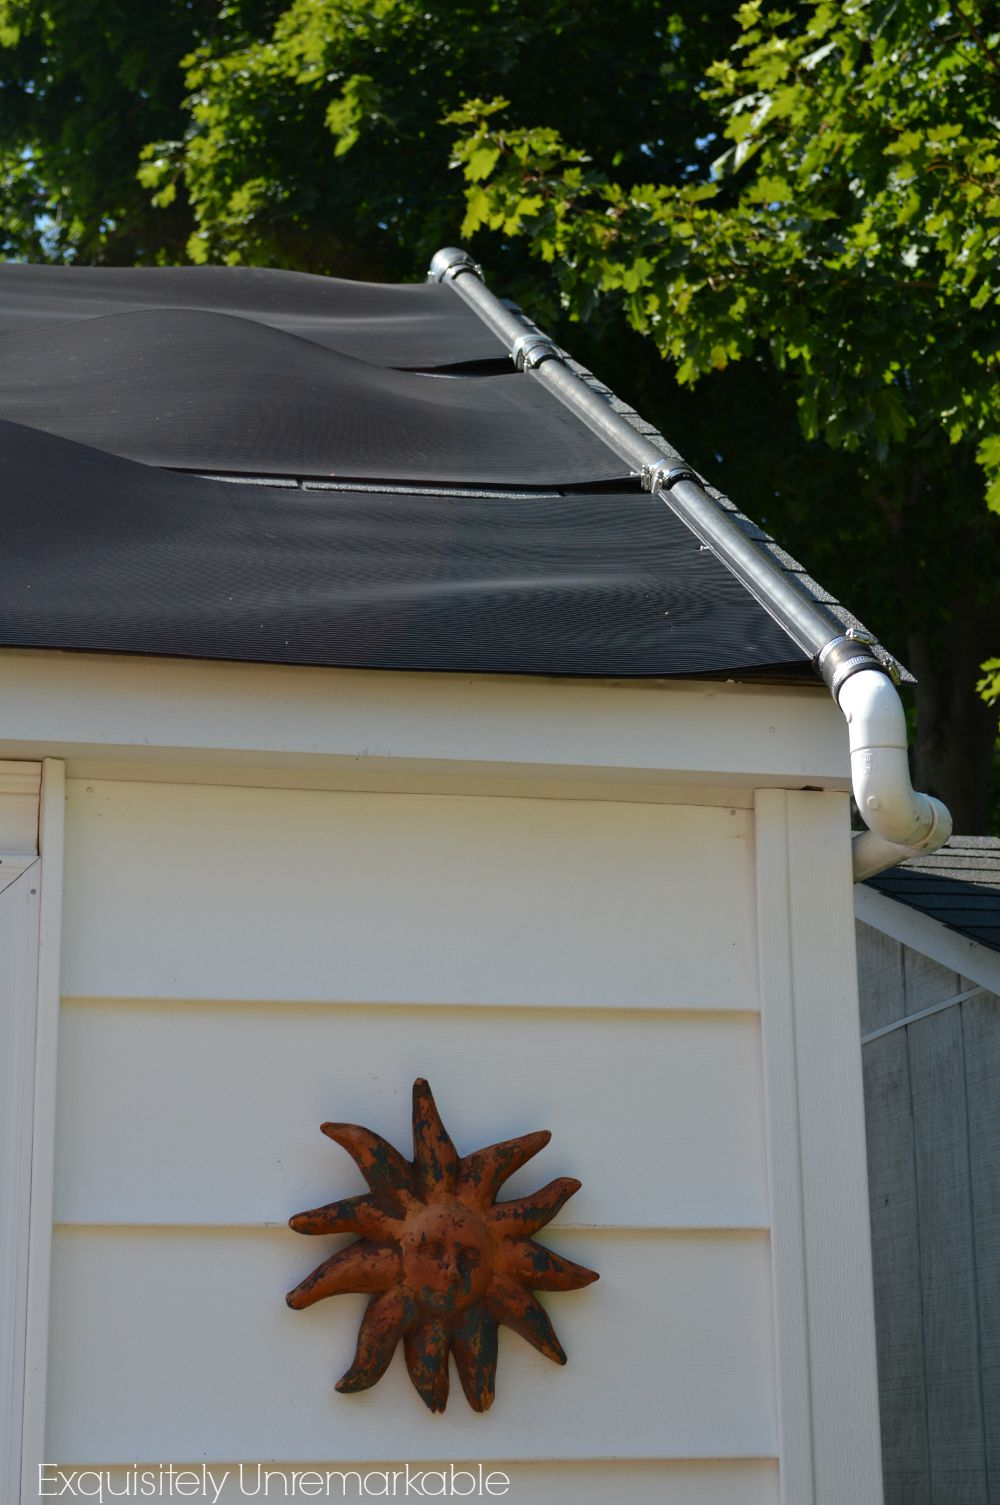 Solar Pool Heater And My Ugly Garage Exquisitely Unremarkable